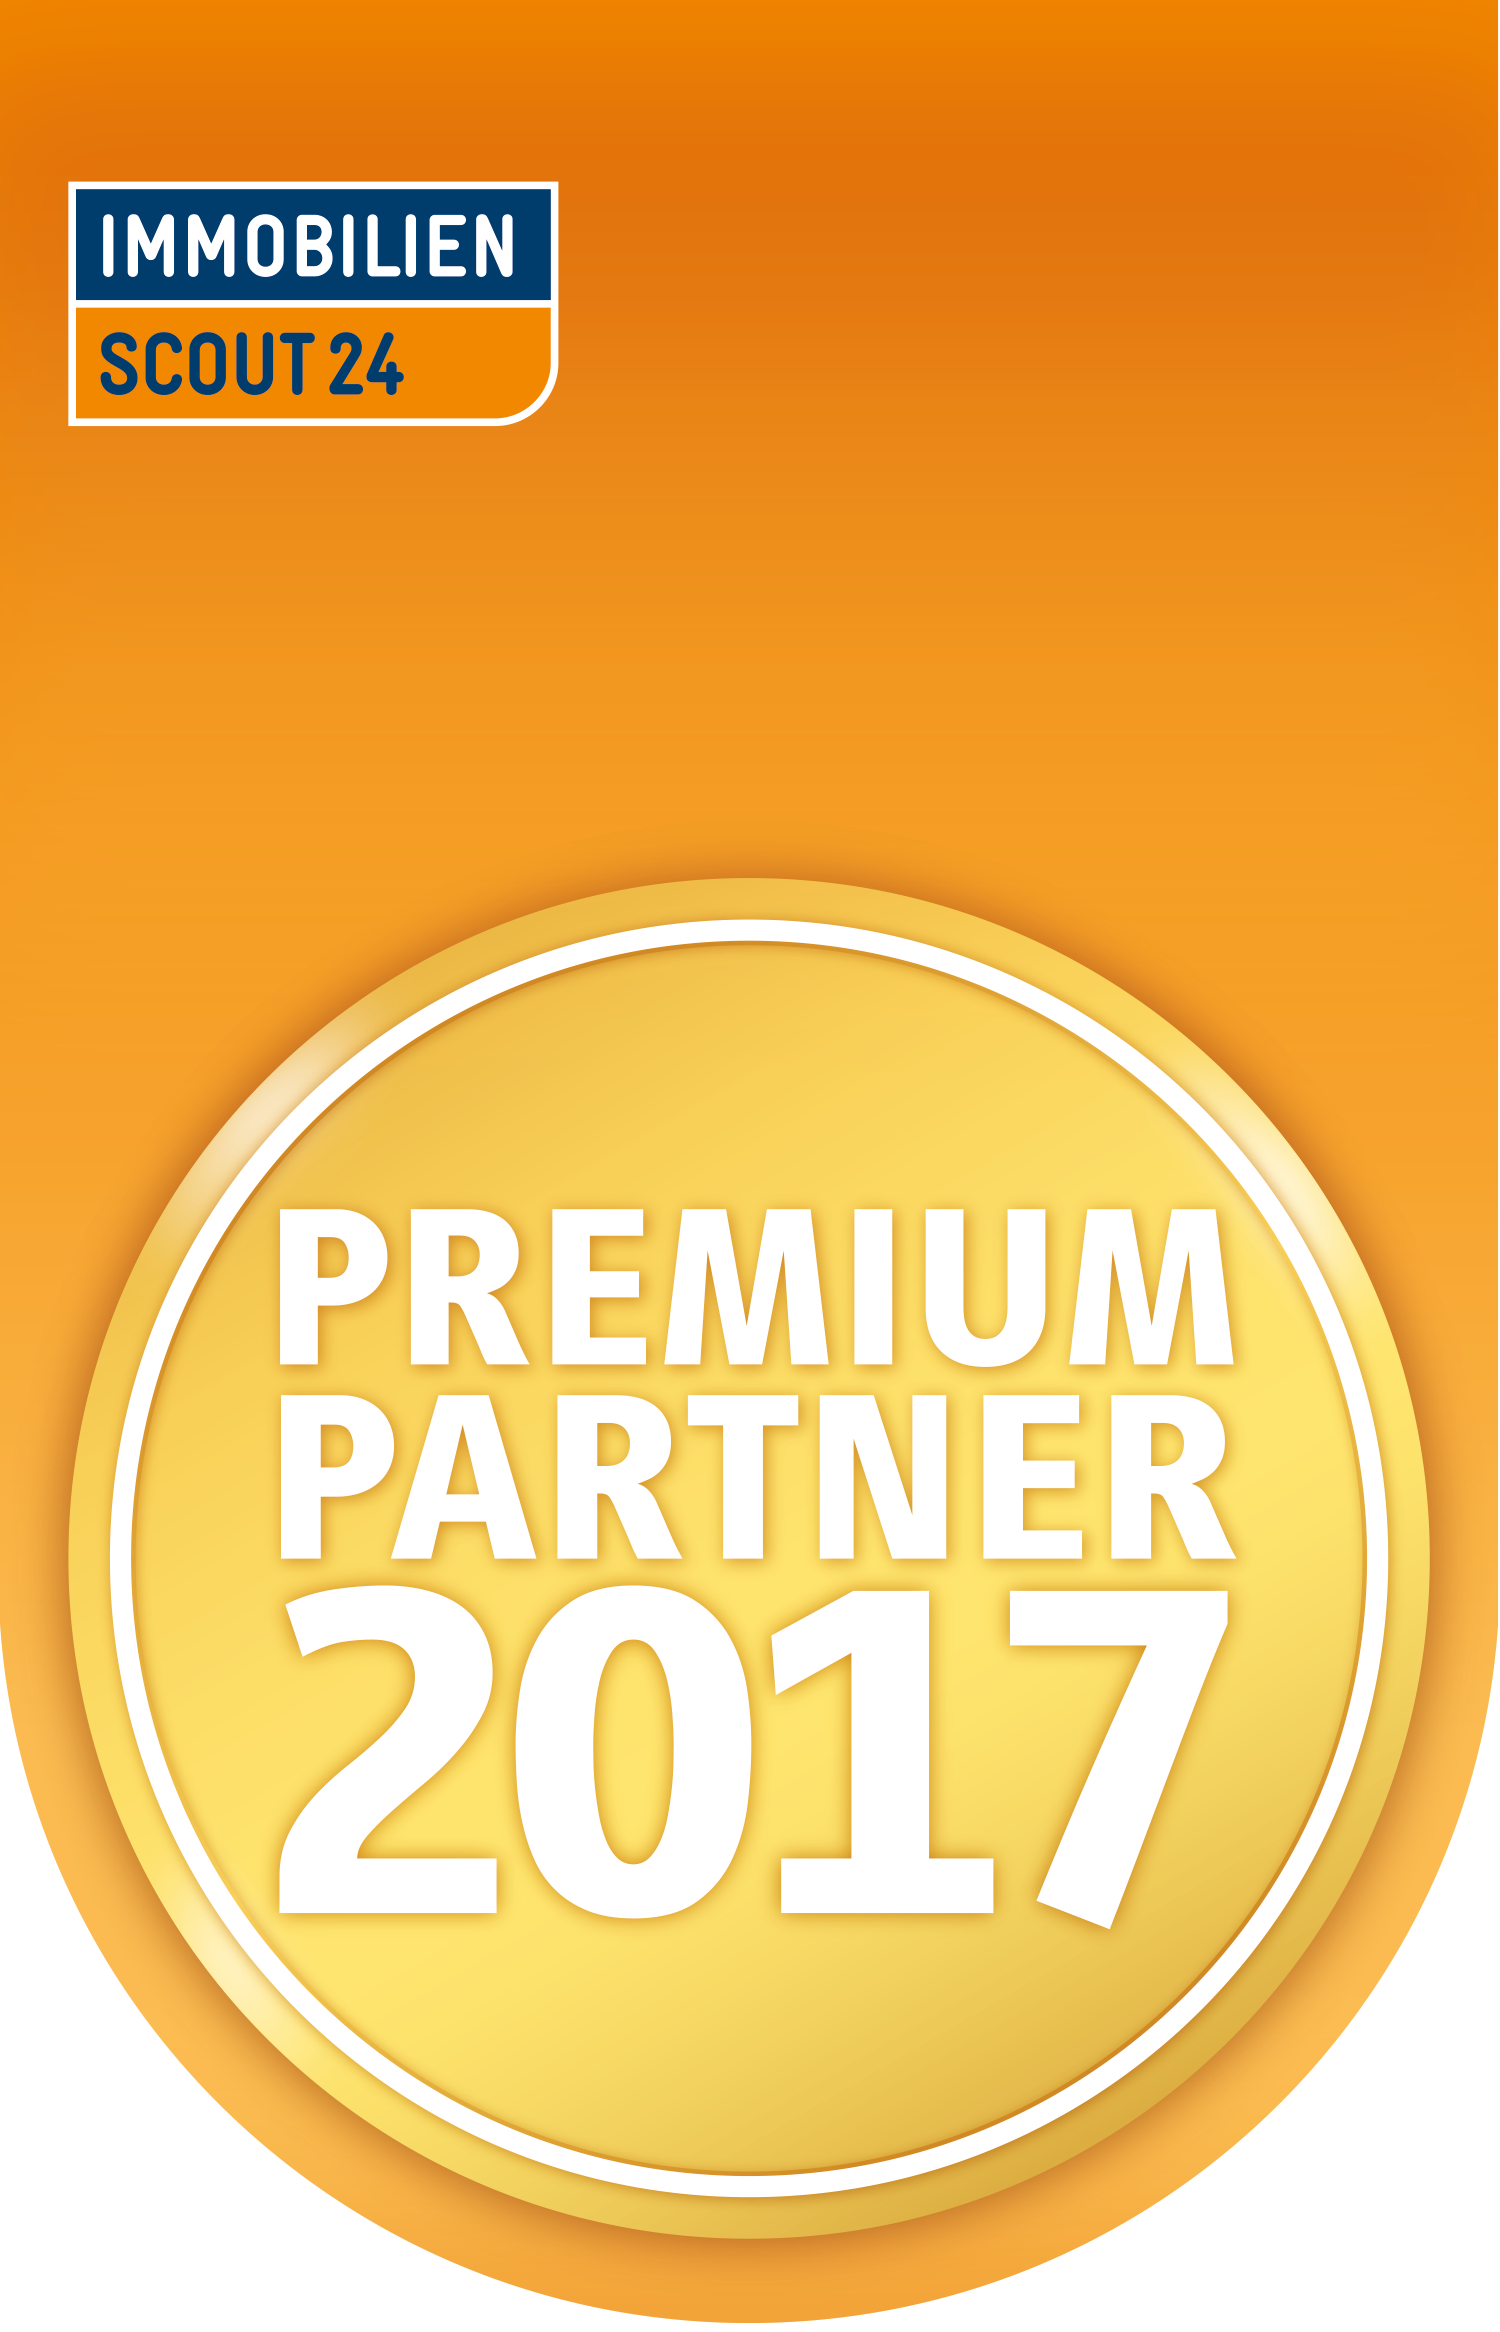 premiumpartner2017